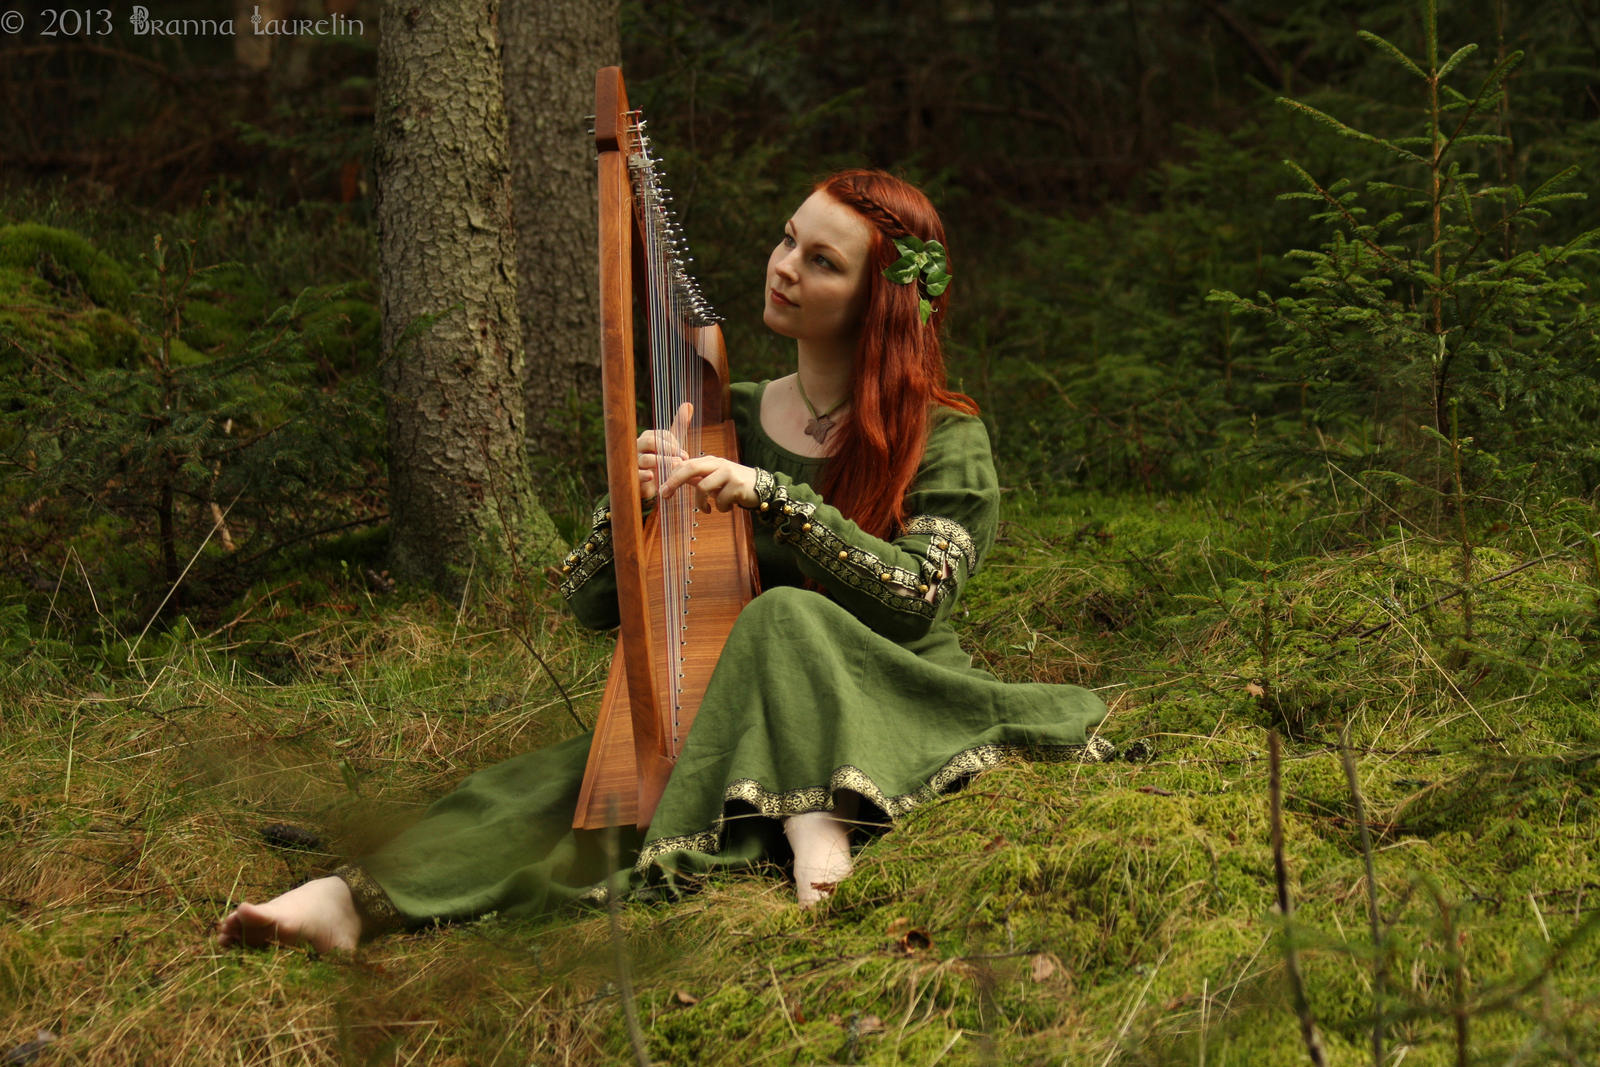 http://img01.deviantart.net/e835/i/2014/001/4/6/forest_harp_by_laurelin_photography-d70fycm.jpg